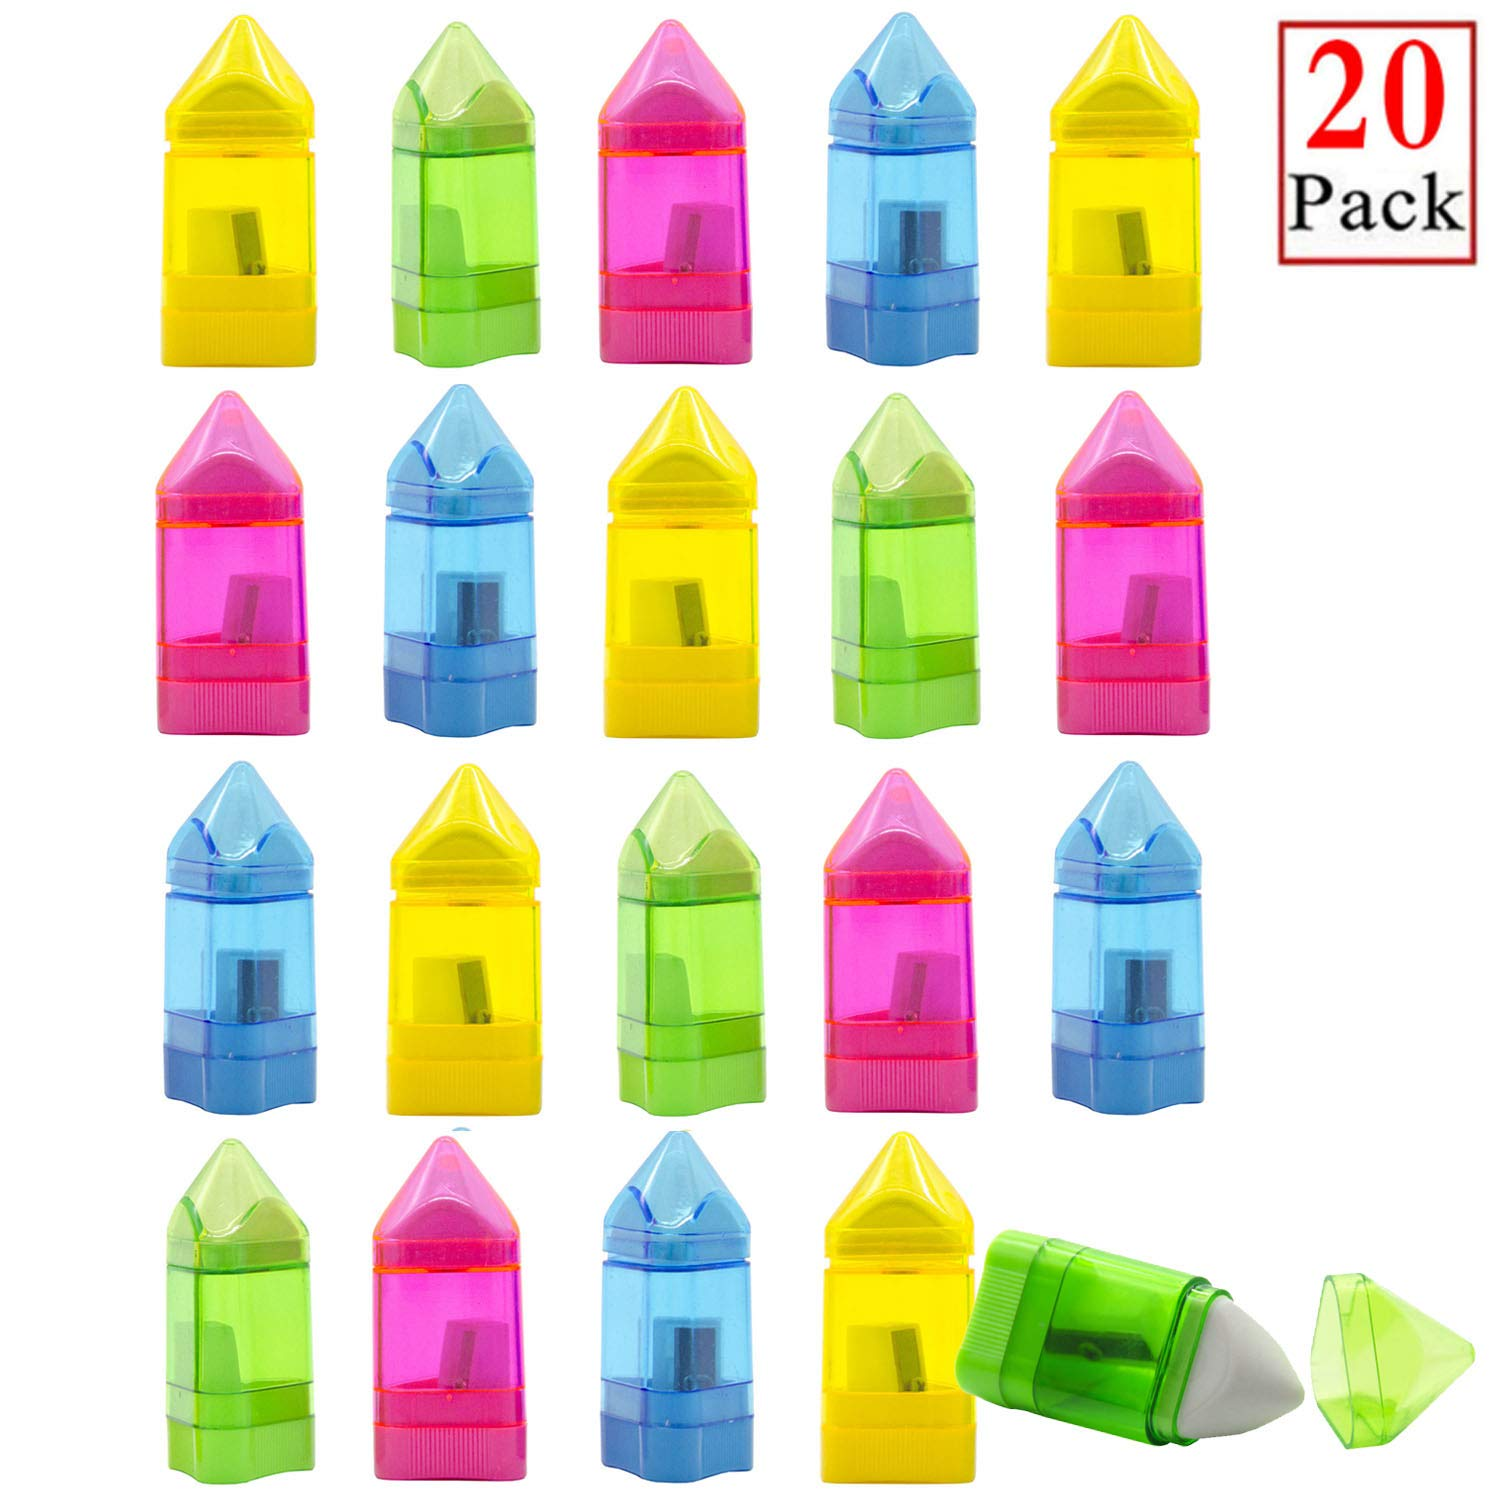 Alpurple 20 Packs Single Hole Manual Pencil Sharpener with Eraser Receptable for Regular Sized Pencils and Crayons for School, Office and Home